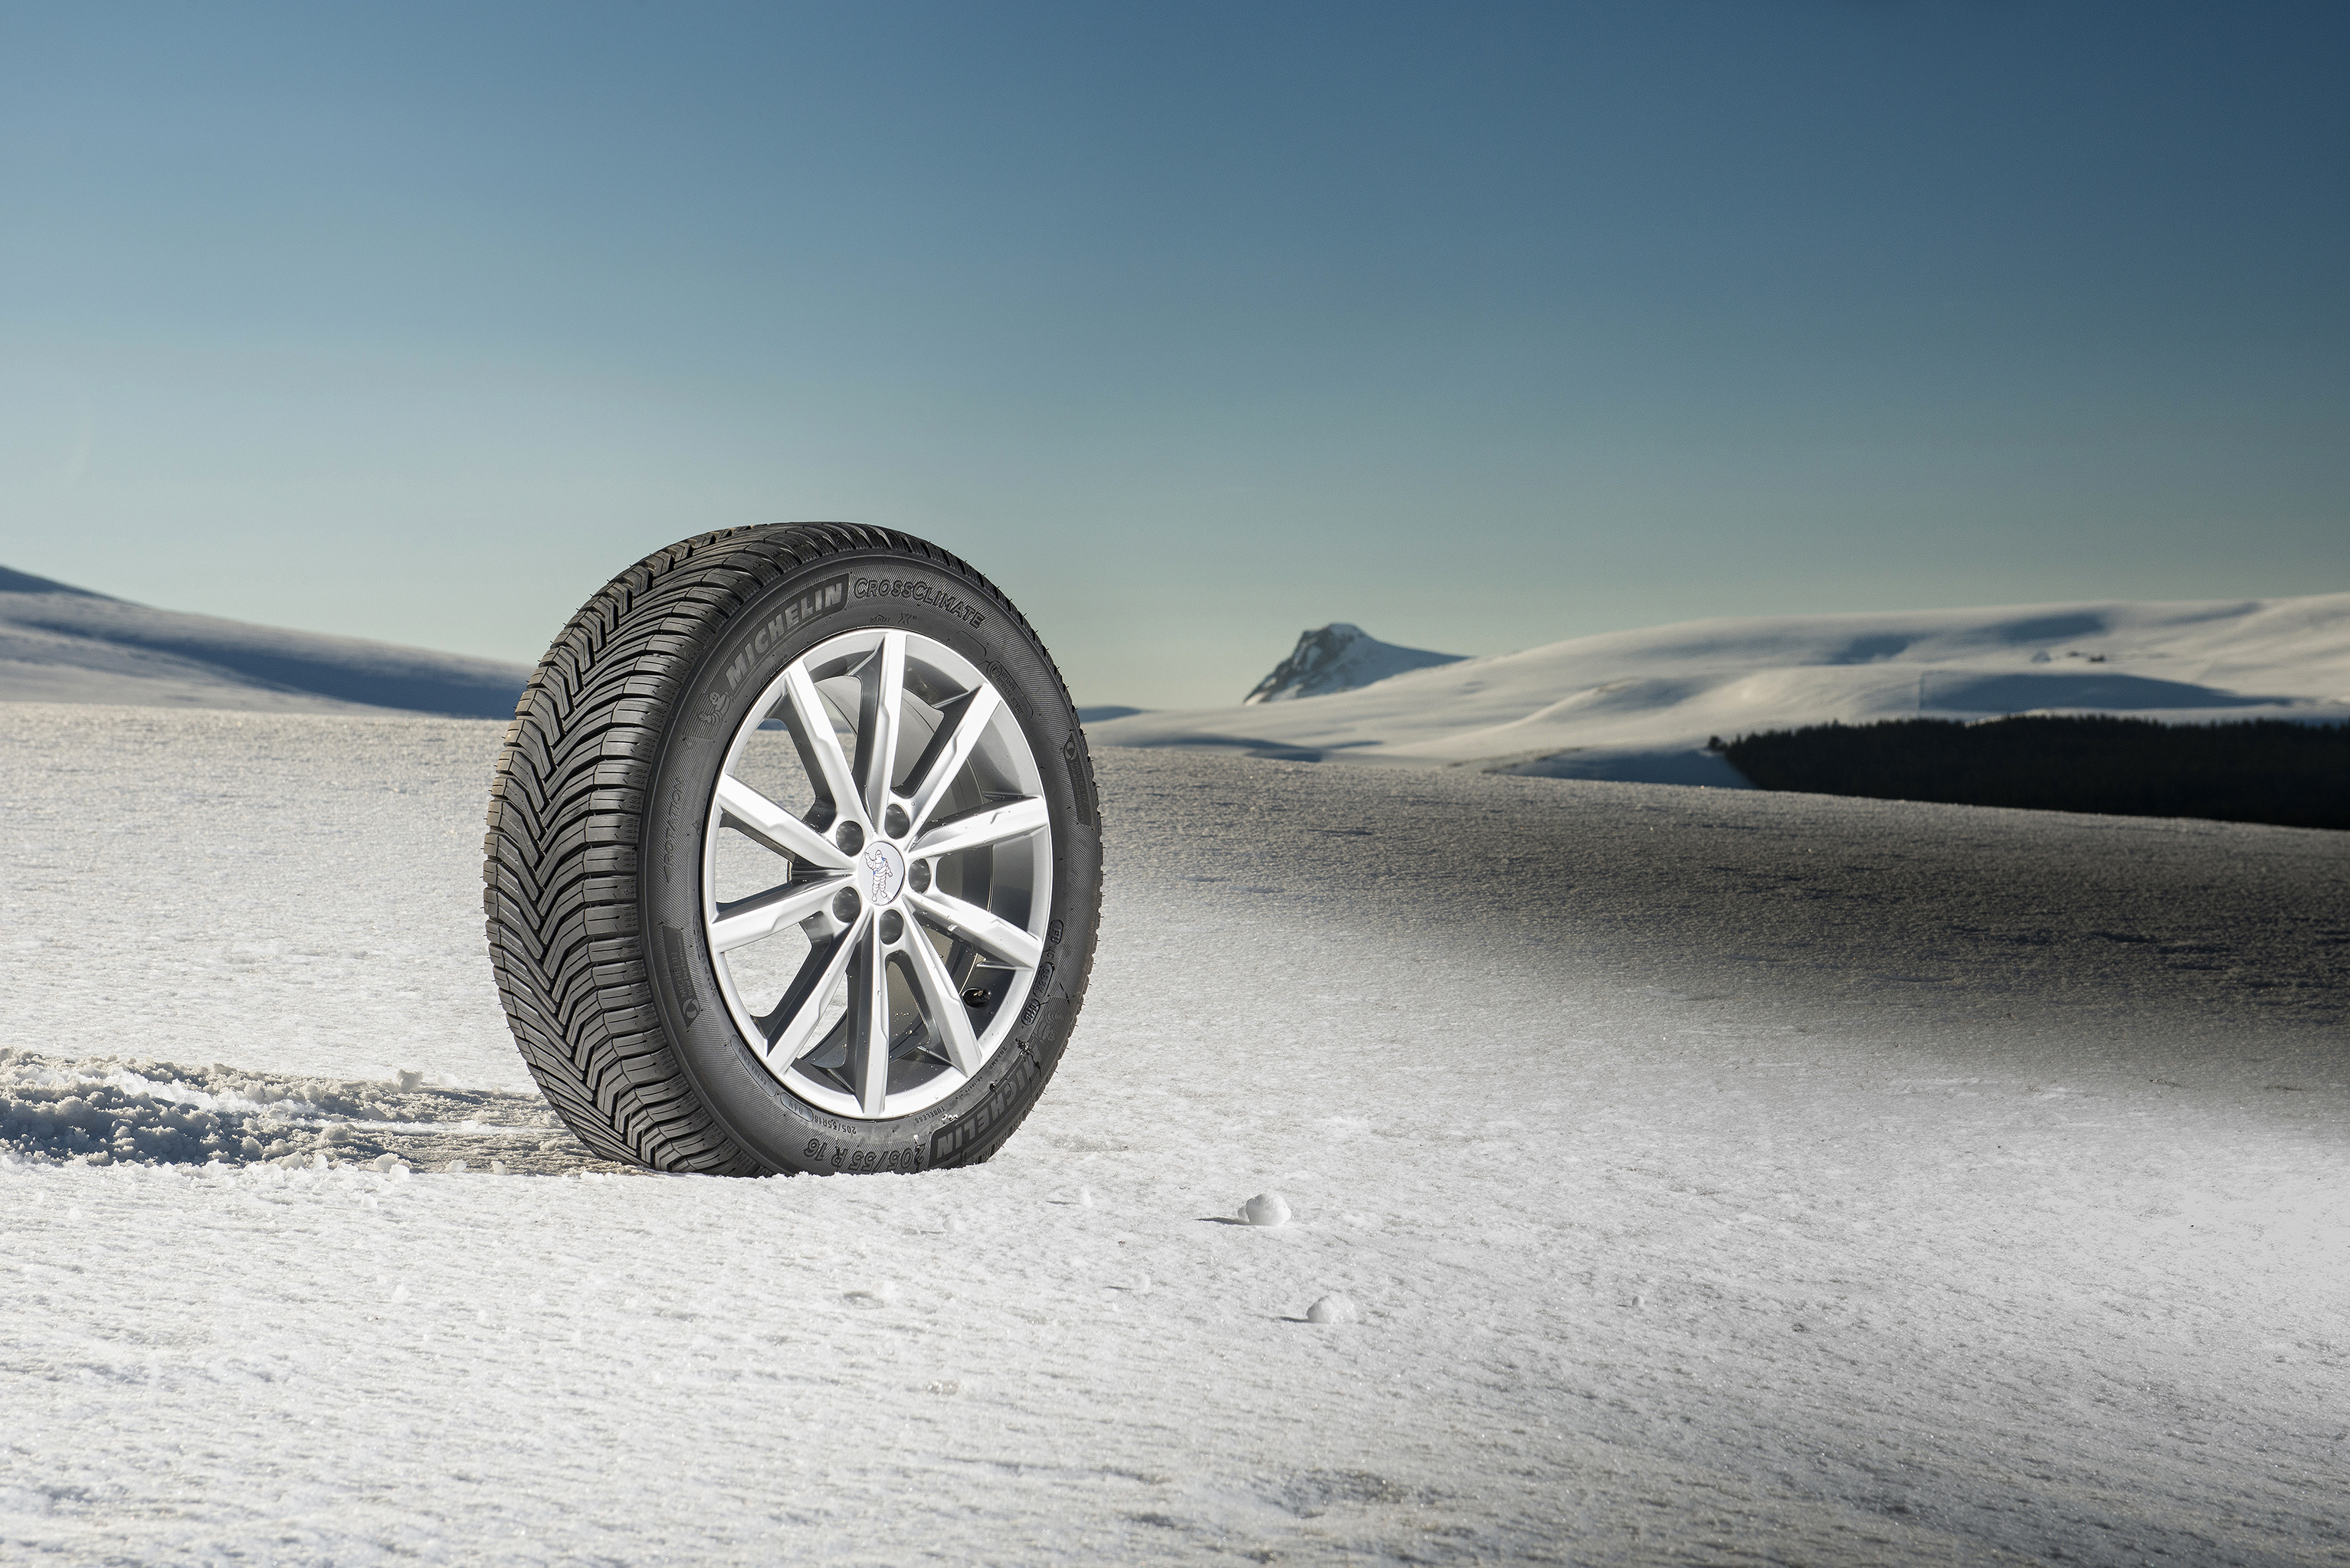 Arc_CROSSCLIMATE_04-jpg_articleId_10-7.jpg